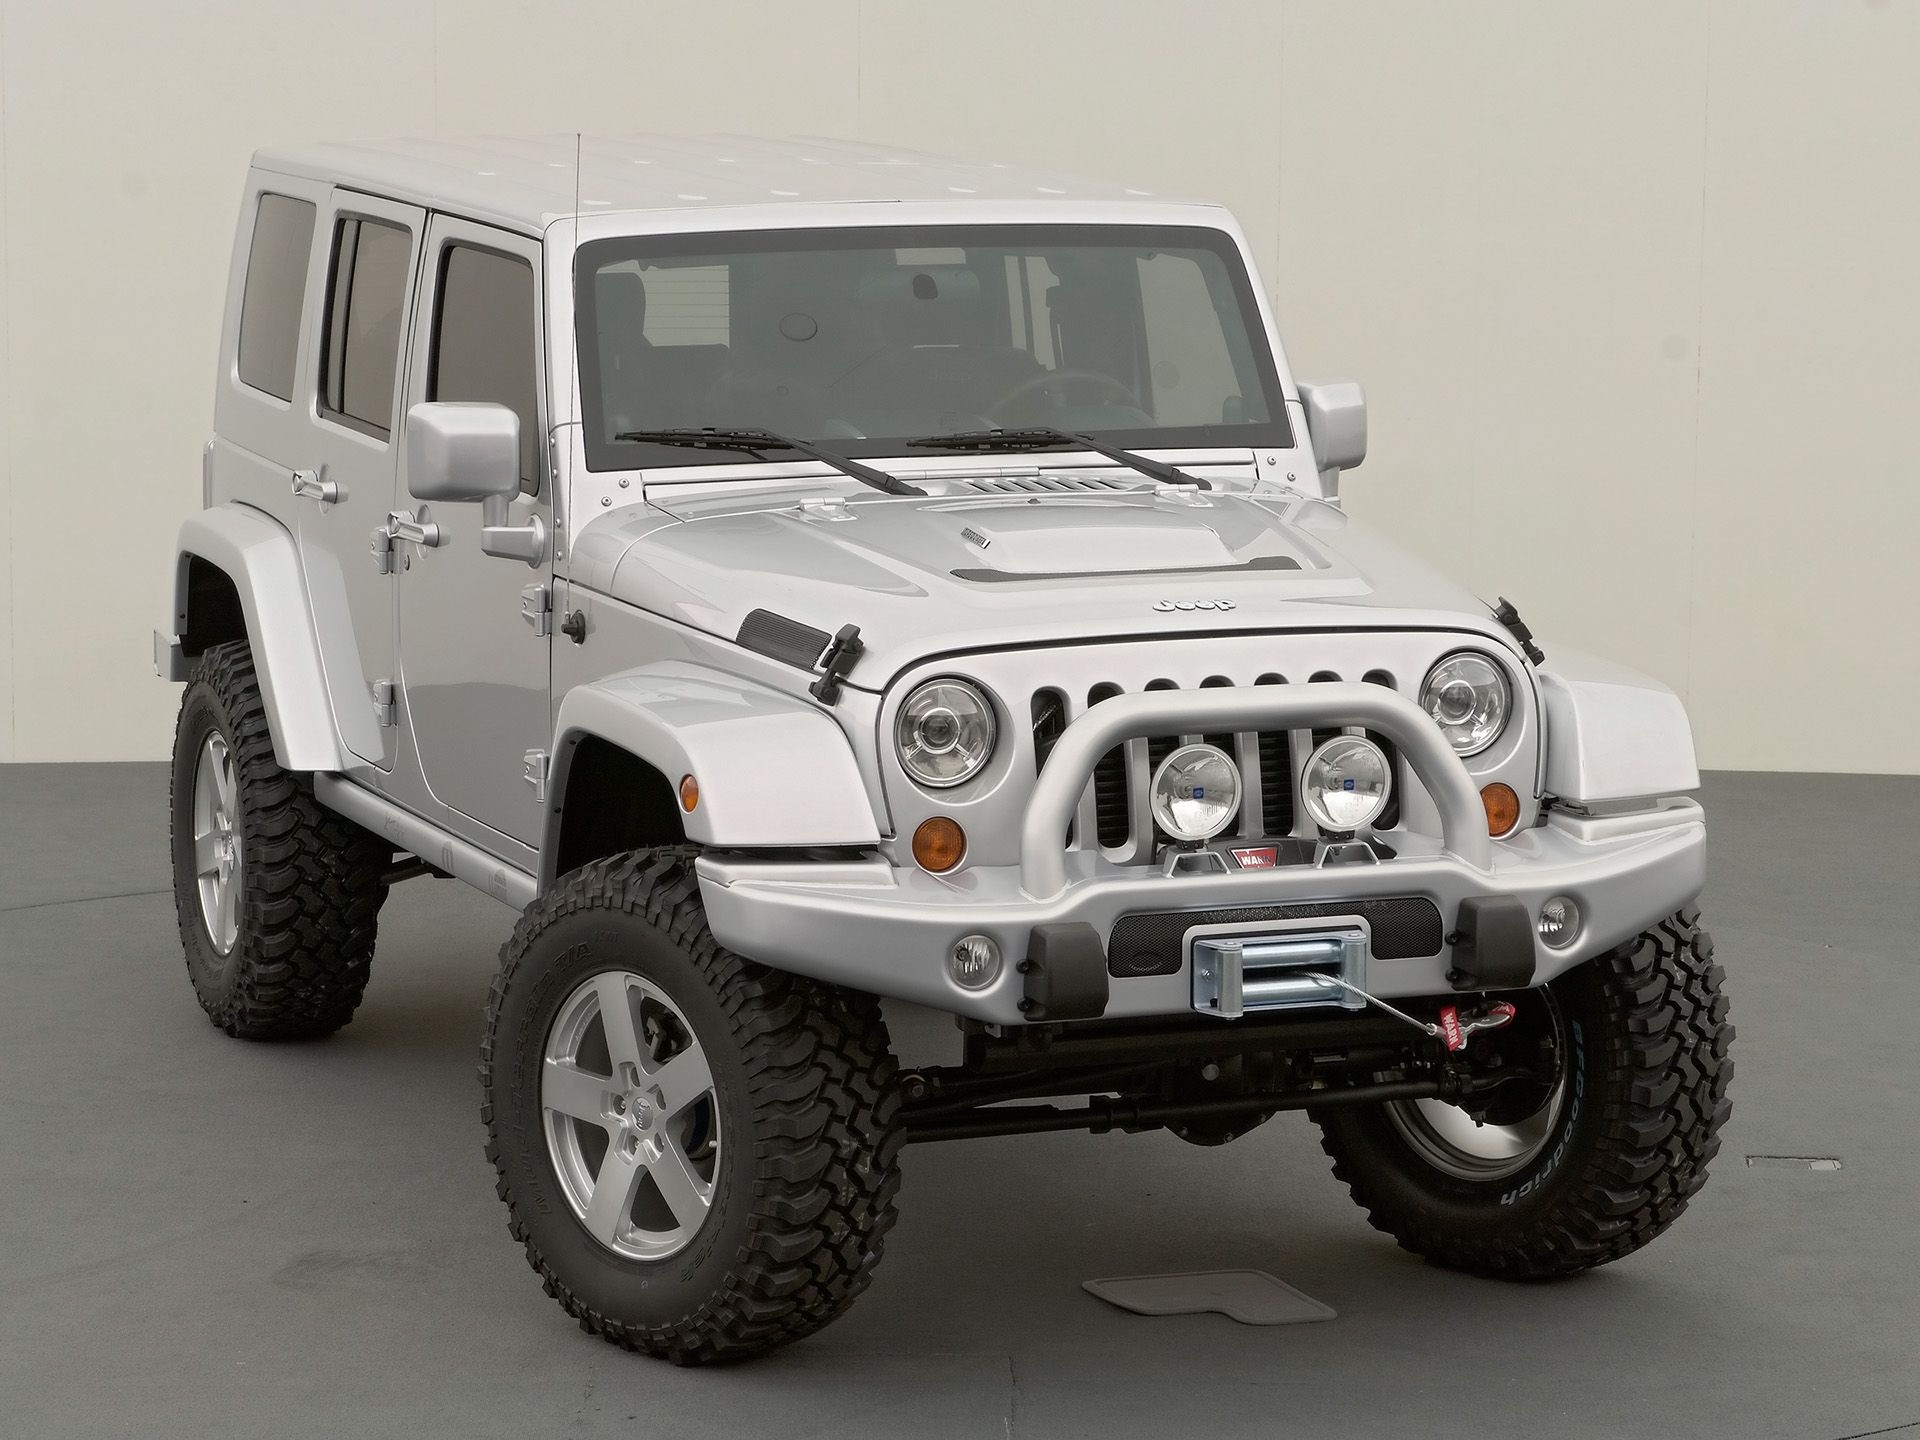 2006 Jeep Wrangler Unlimited Rubicon Front Angle 1920x1440 Wallpaper 2007 Jeep Wrangler 2006 Jeep Wrangler Unlimited Jeep Wrangler